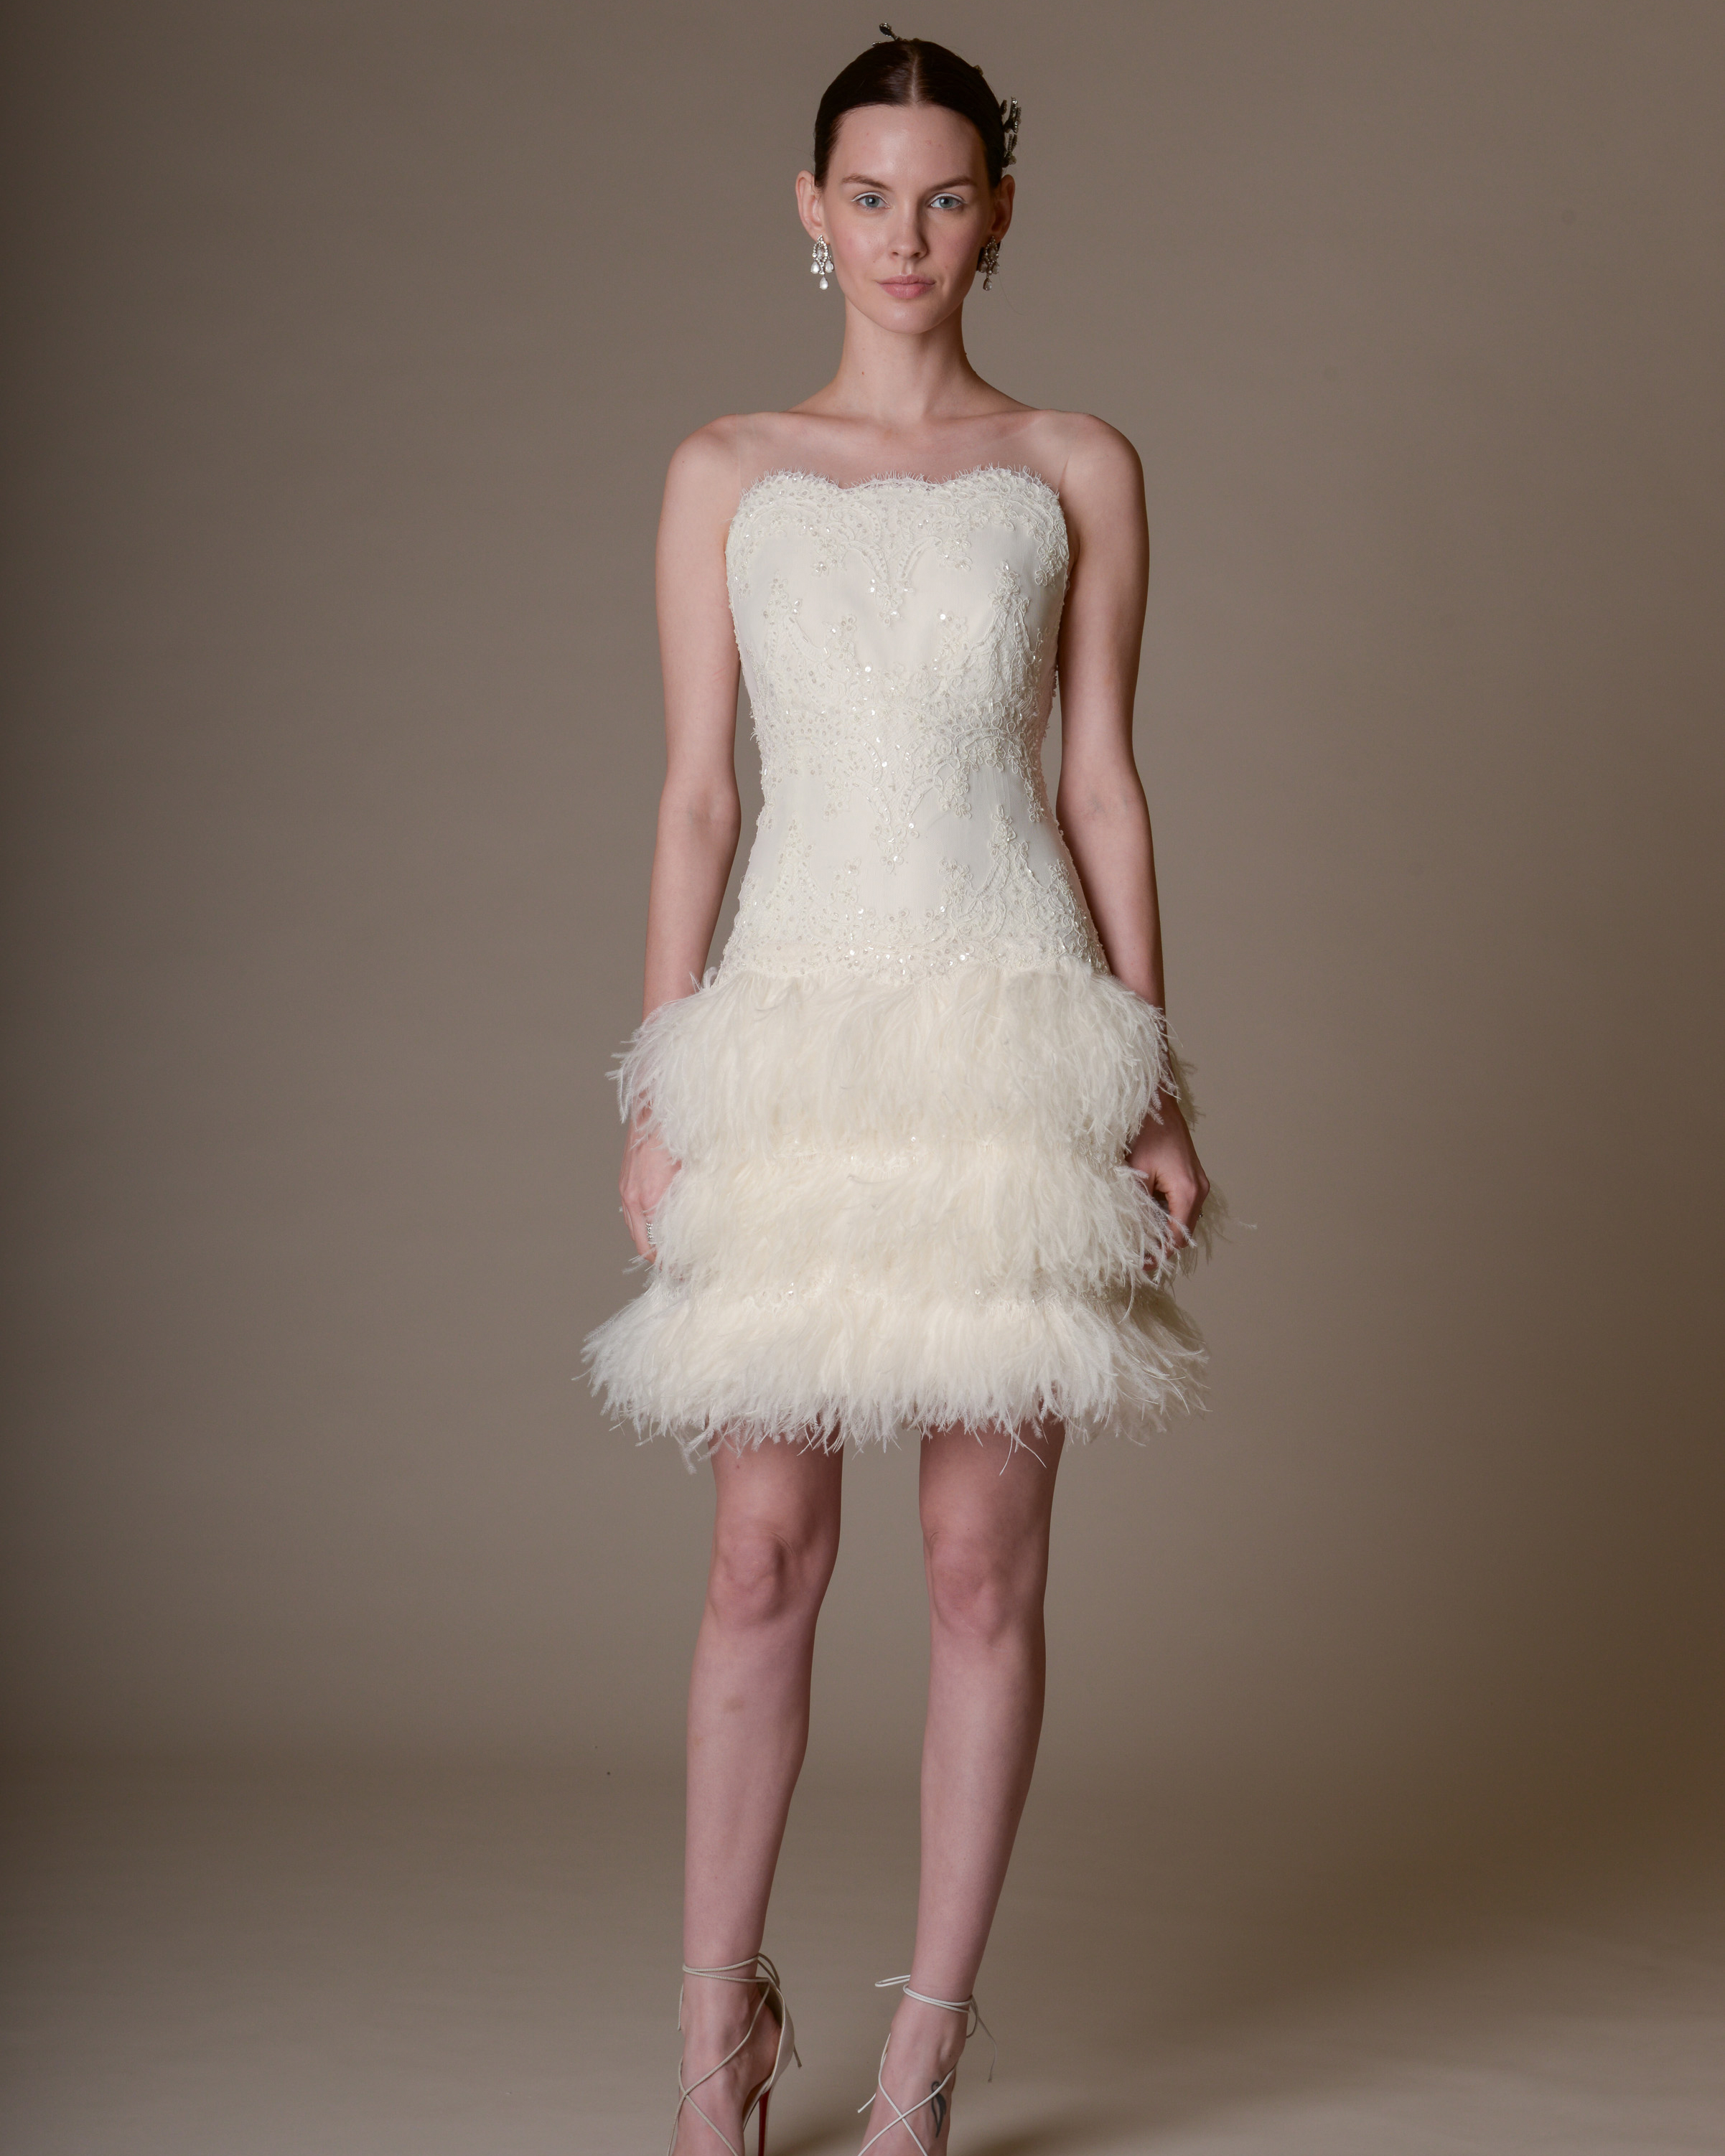 21 Short Wedding Dresses That Go to New Lengths for the Big Day